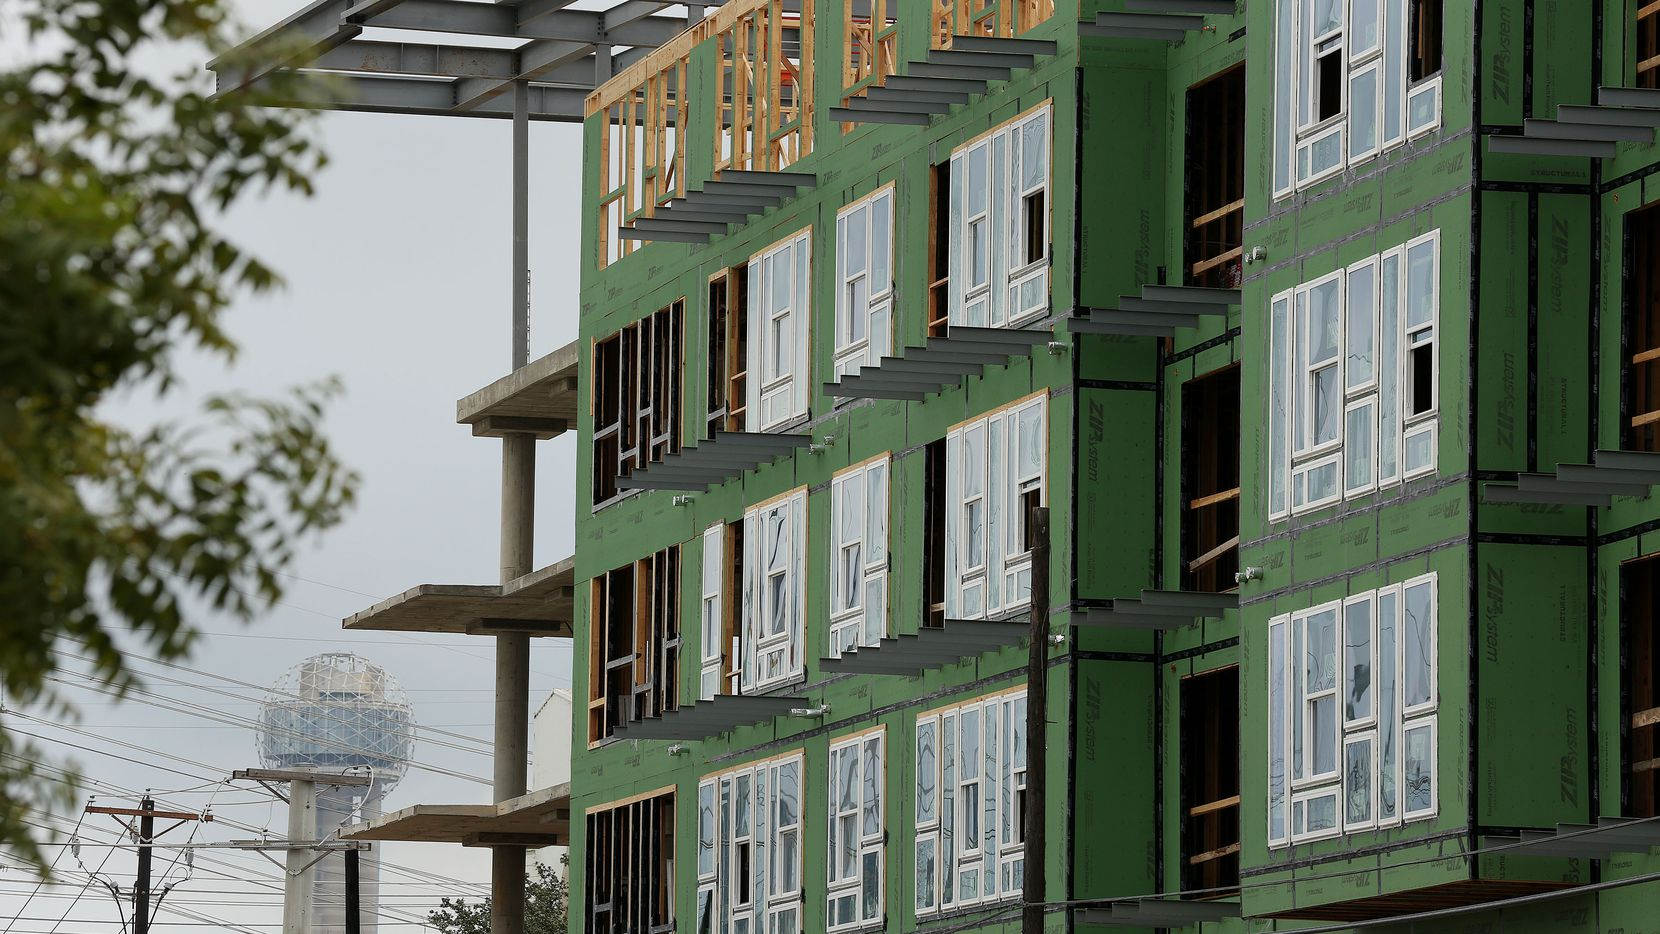 More than 42,000 apartments are being built in North Texas, second only to New York City.